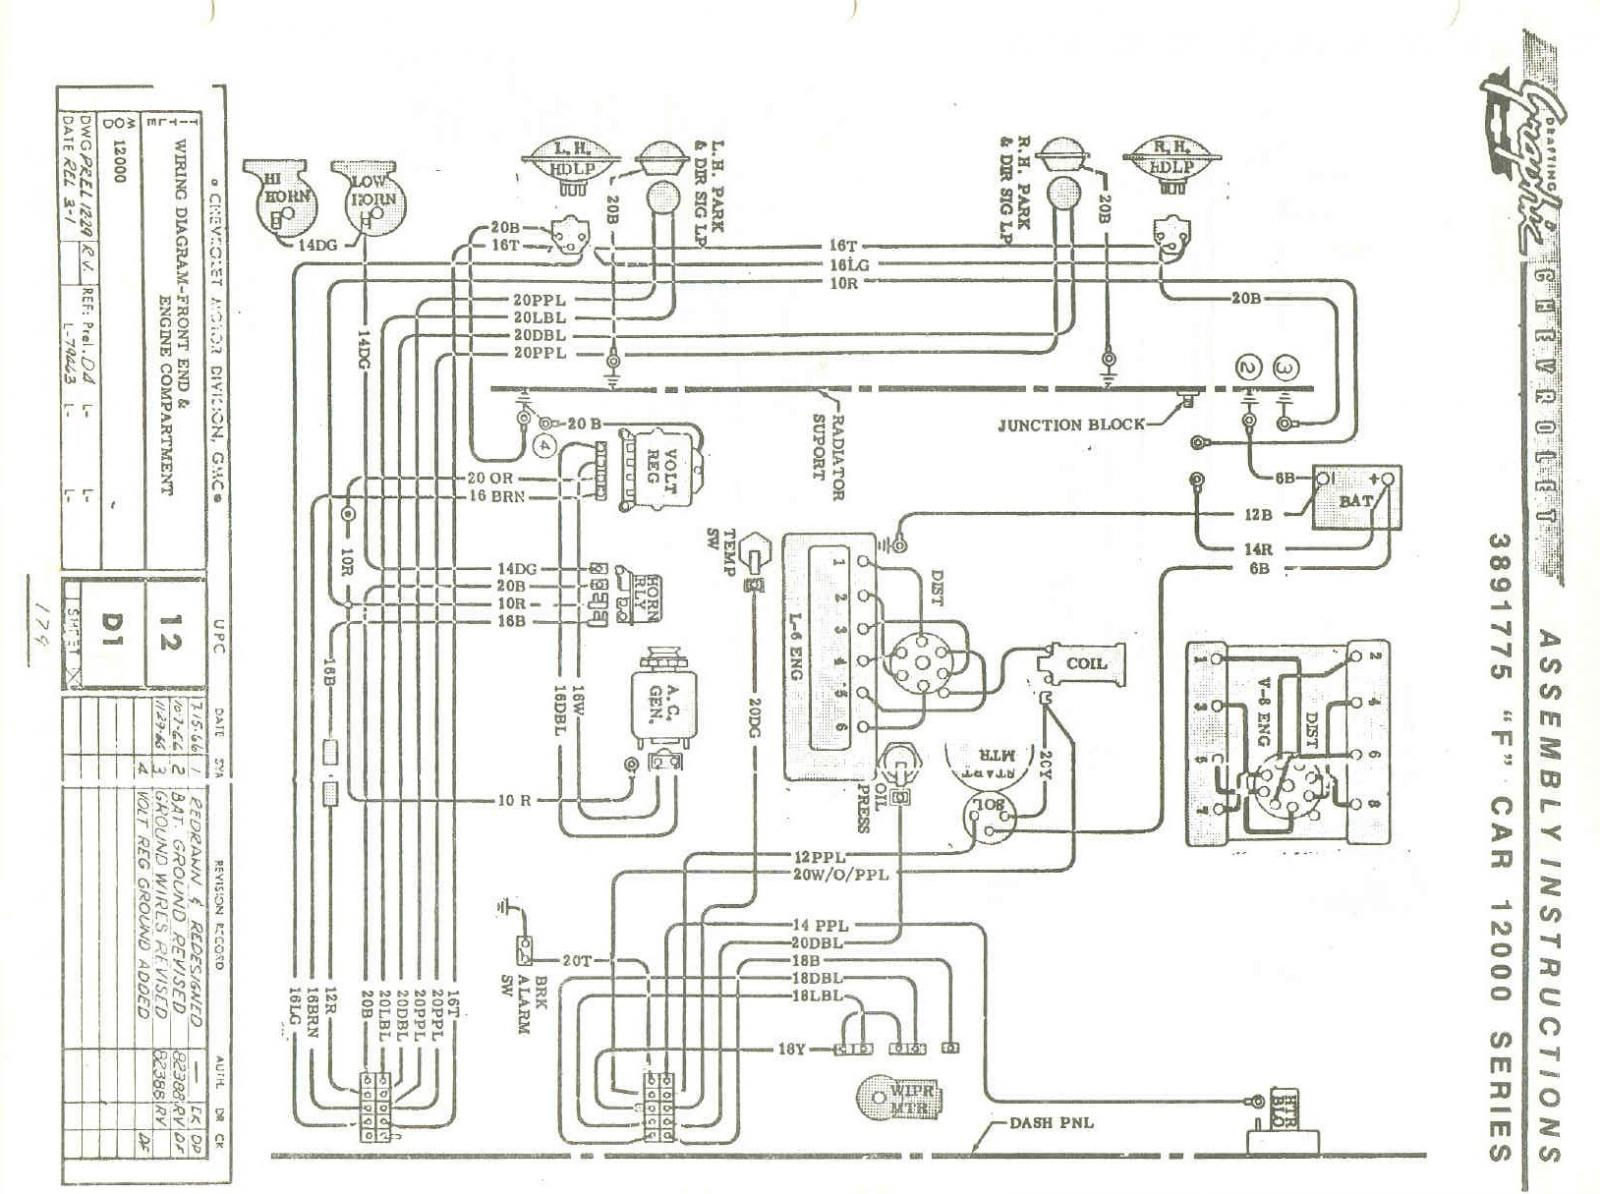 [DIAGRAM] 2003 Impala Headlight Wiring Diagram FULL